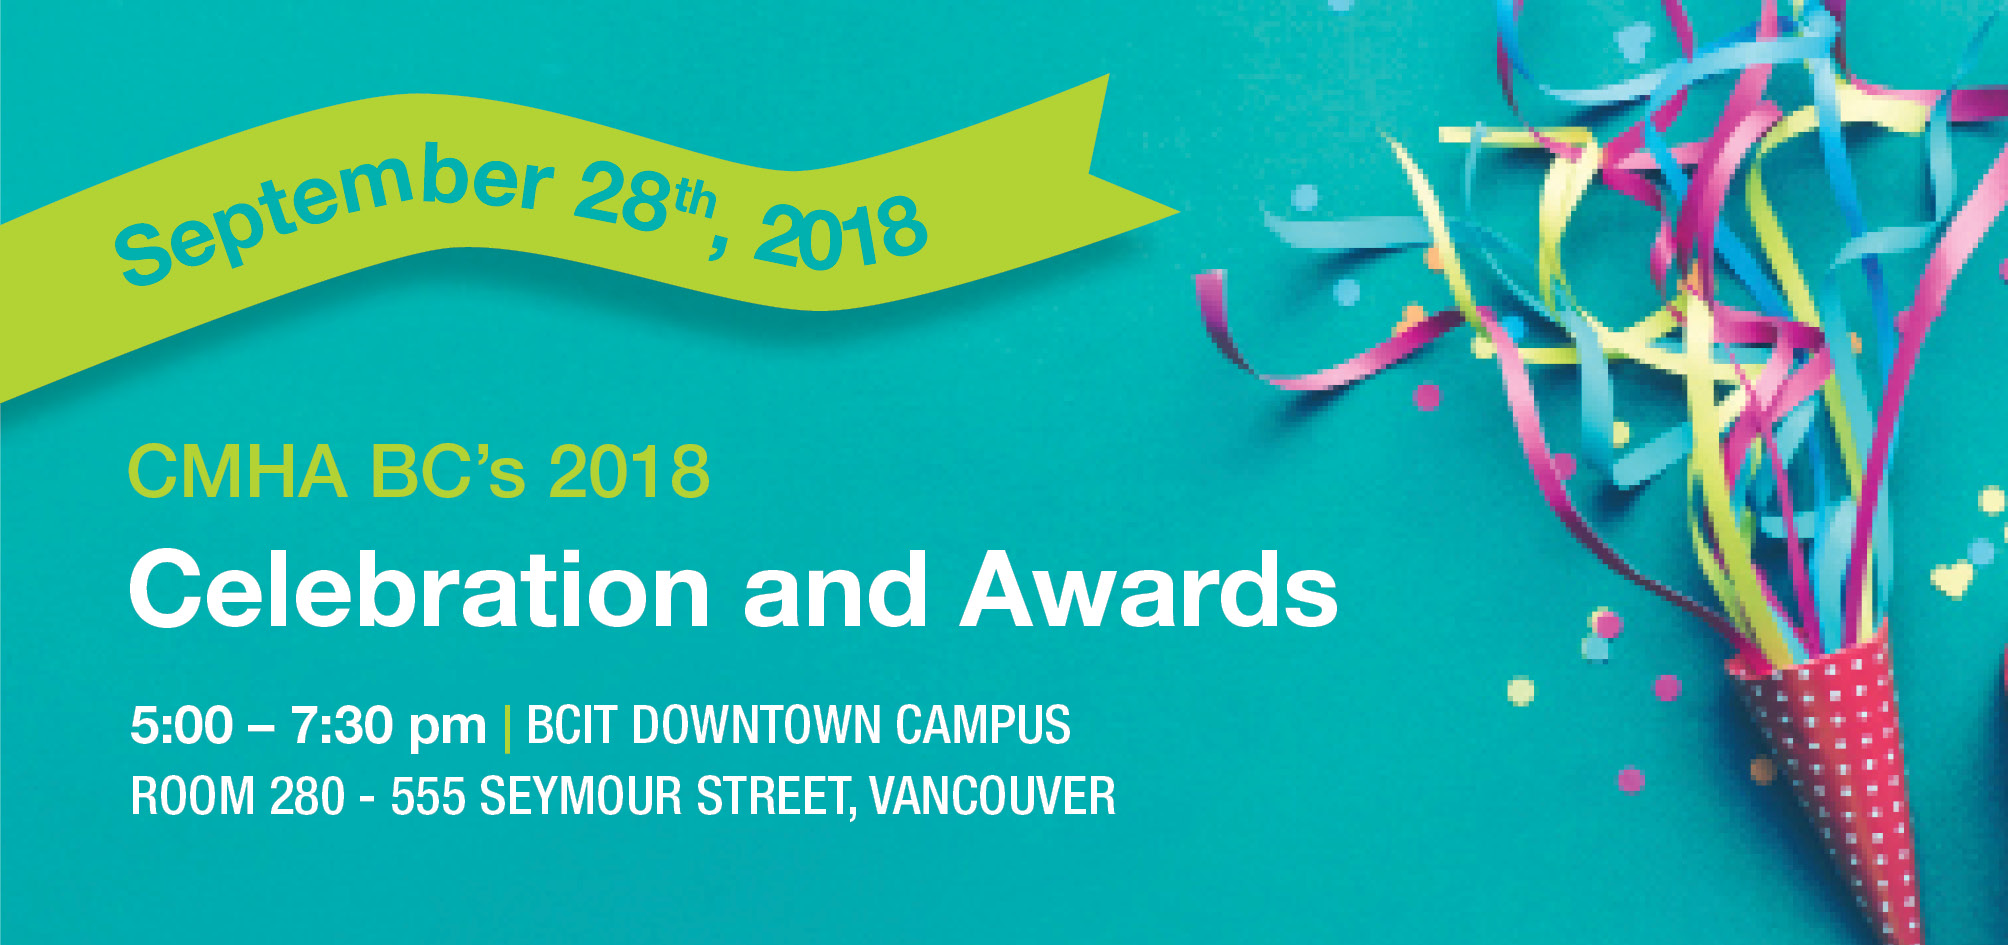 CMHA BC Awards Celebration - September 28,. 2018